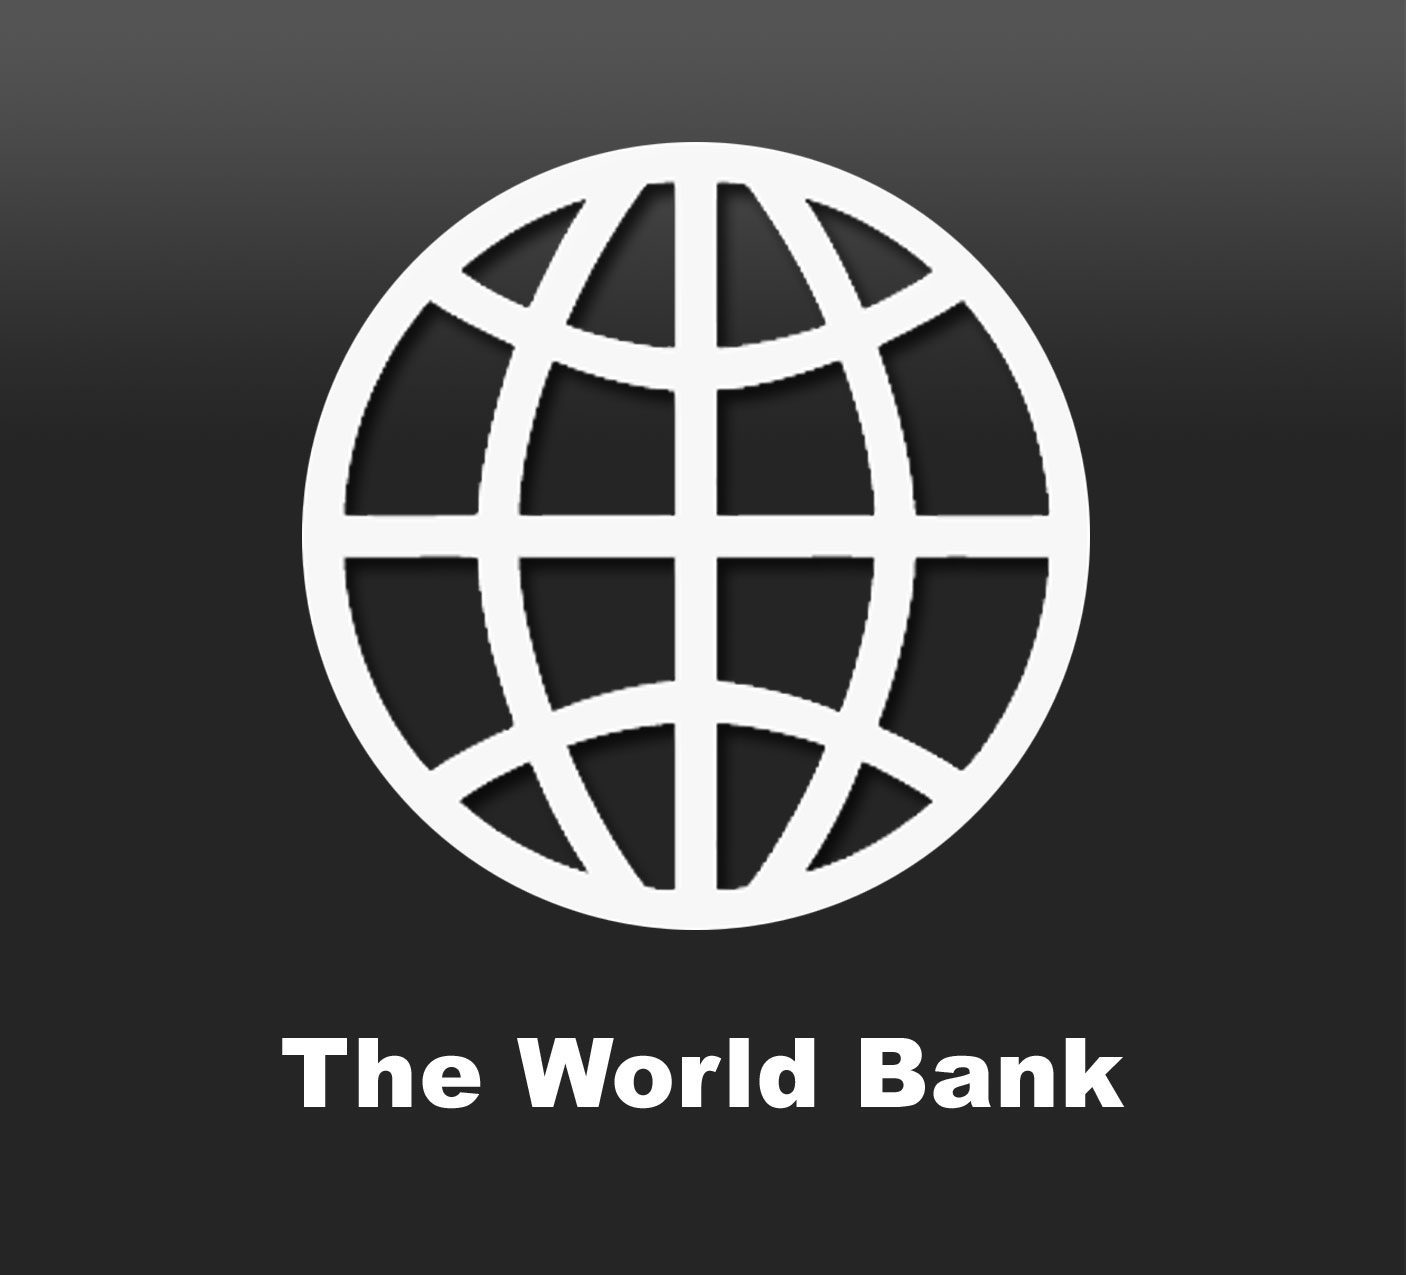 World Bank Group Fellowship Program for Ph.D. Students of African Descent